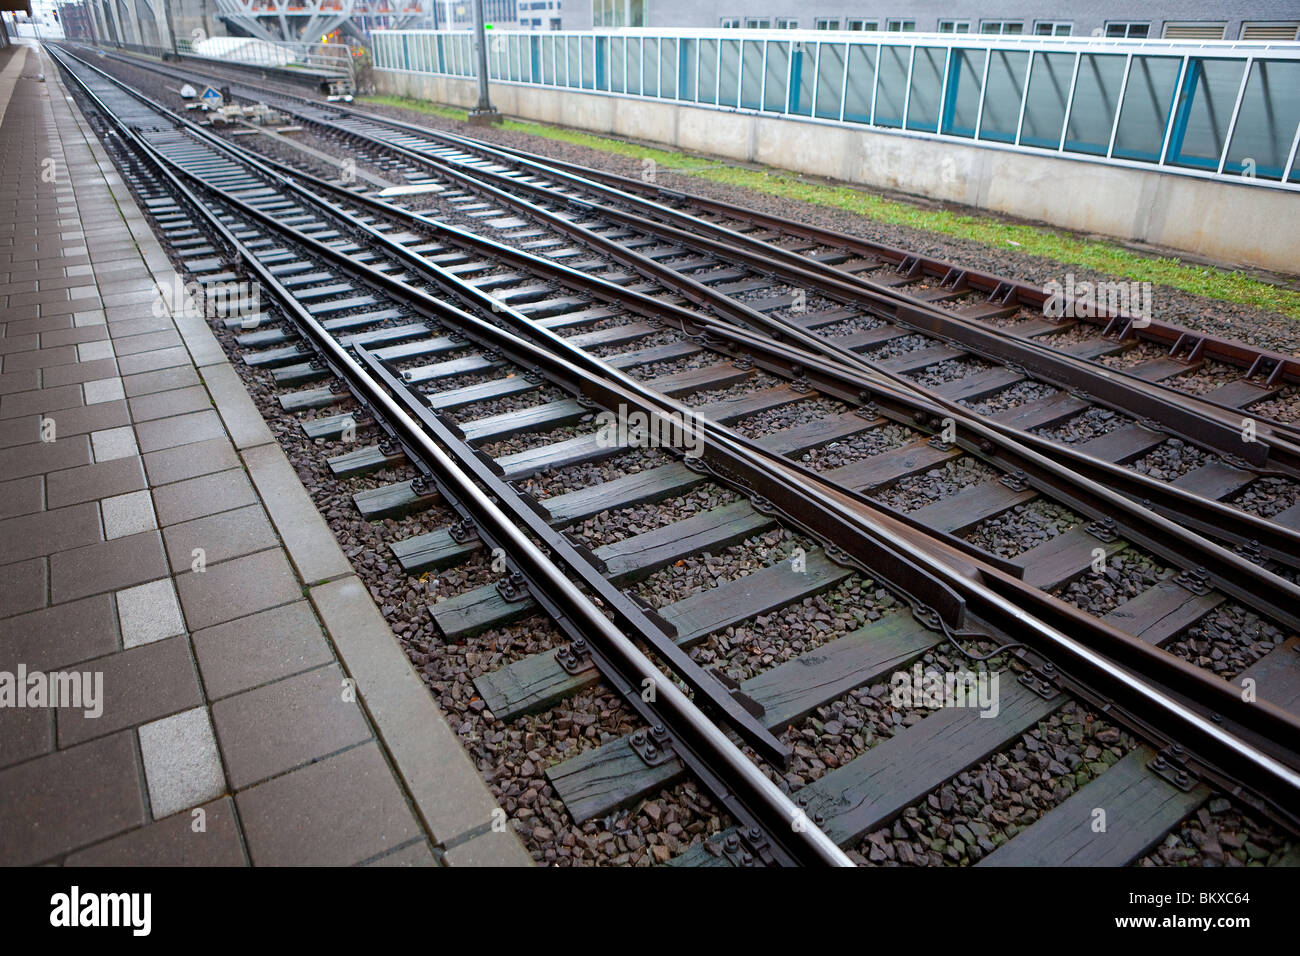 Rails at the train station - Stock Image